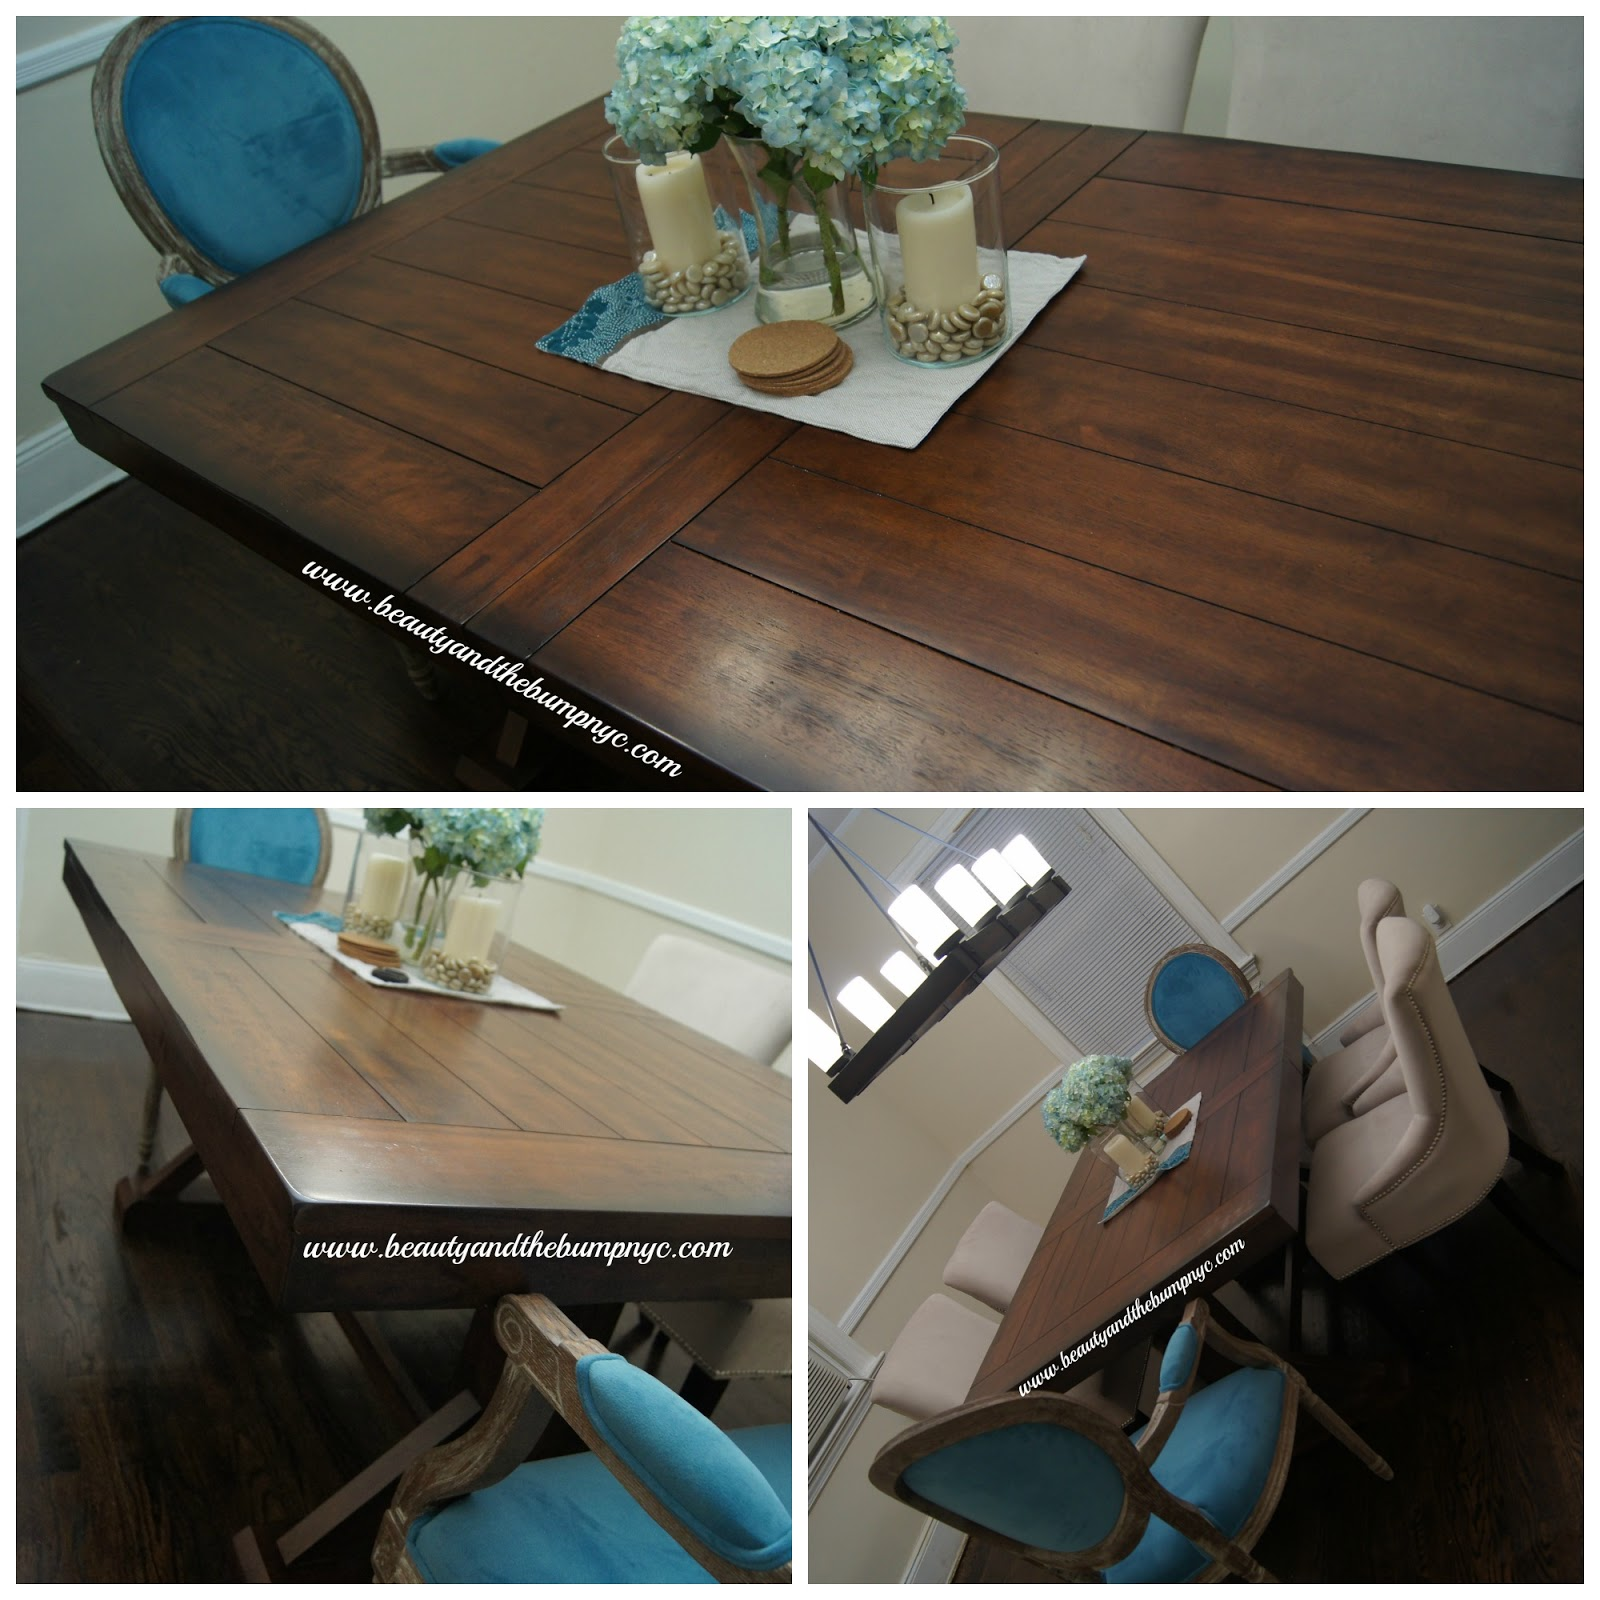 my farmhouse glam dining room beauty and the bump it s funny because i purchased the chairs without the approval of my husband and knowing i d already purchased the chairs i asked him his opinion of them